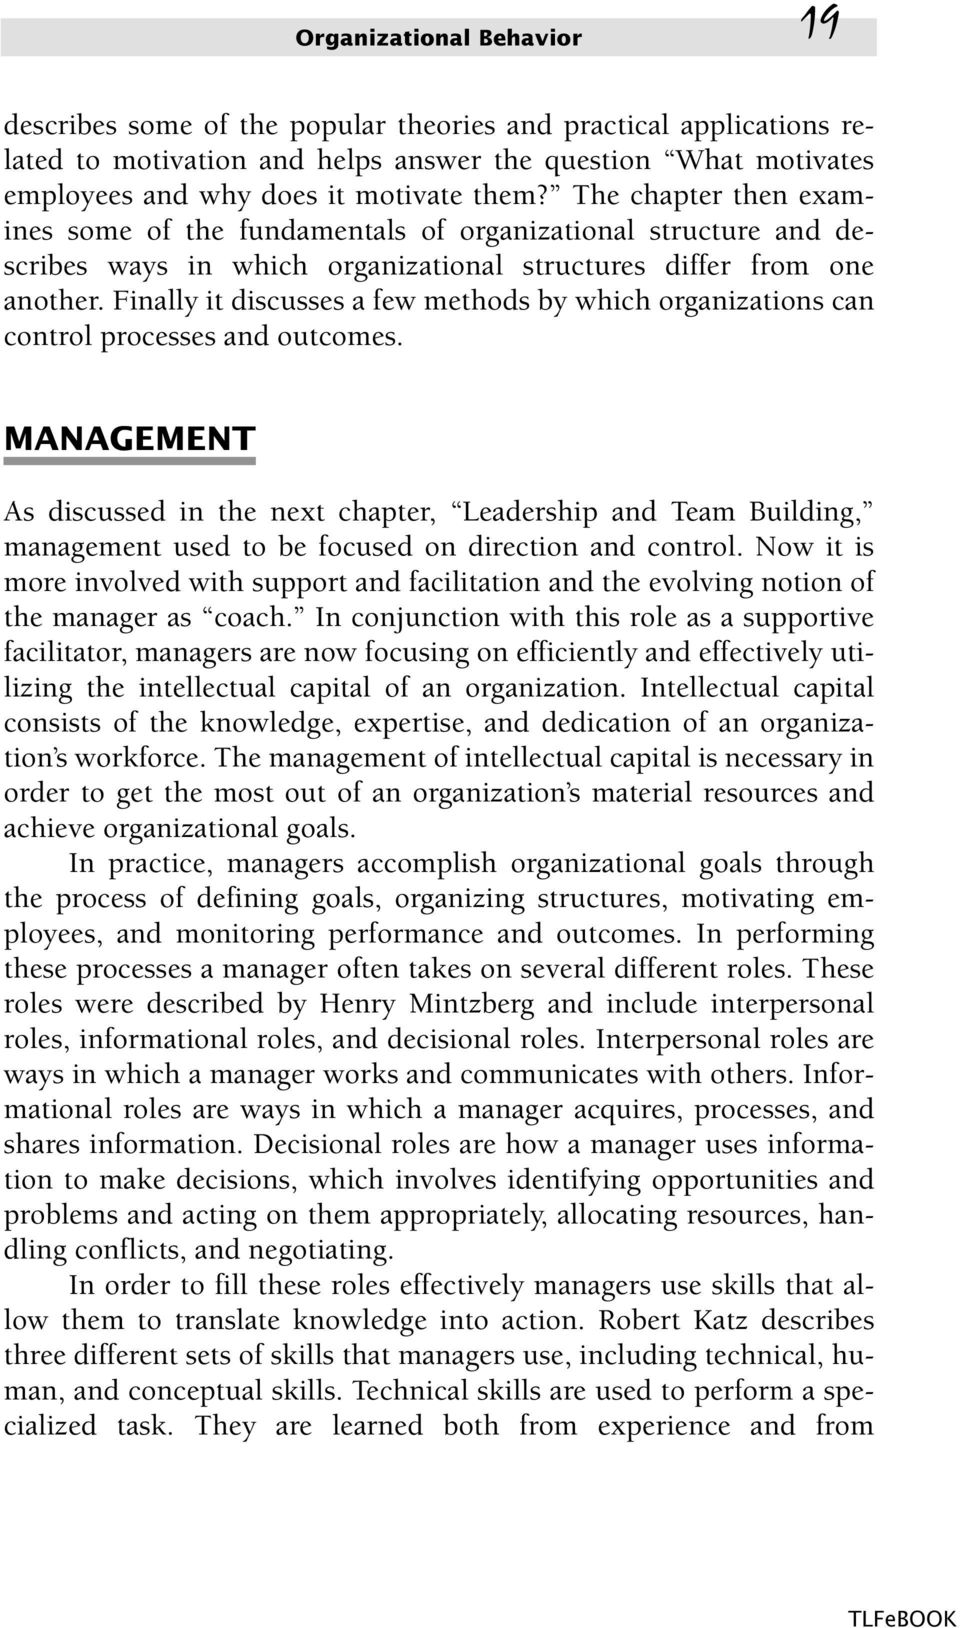 An organization consists of individuals with different tasks